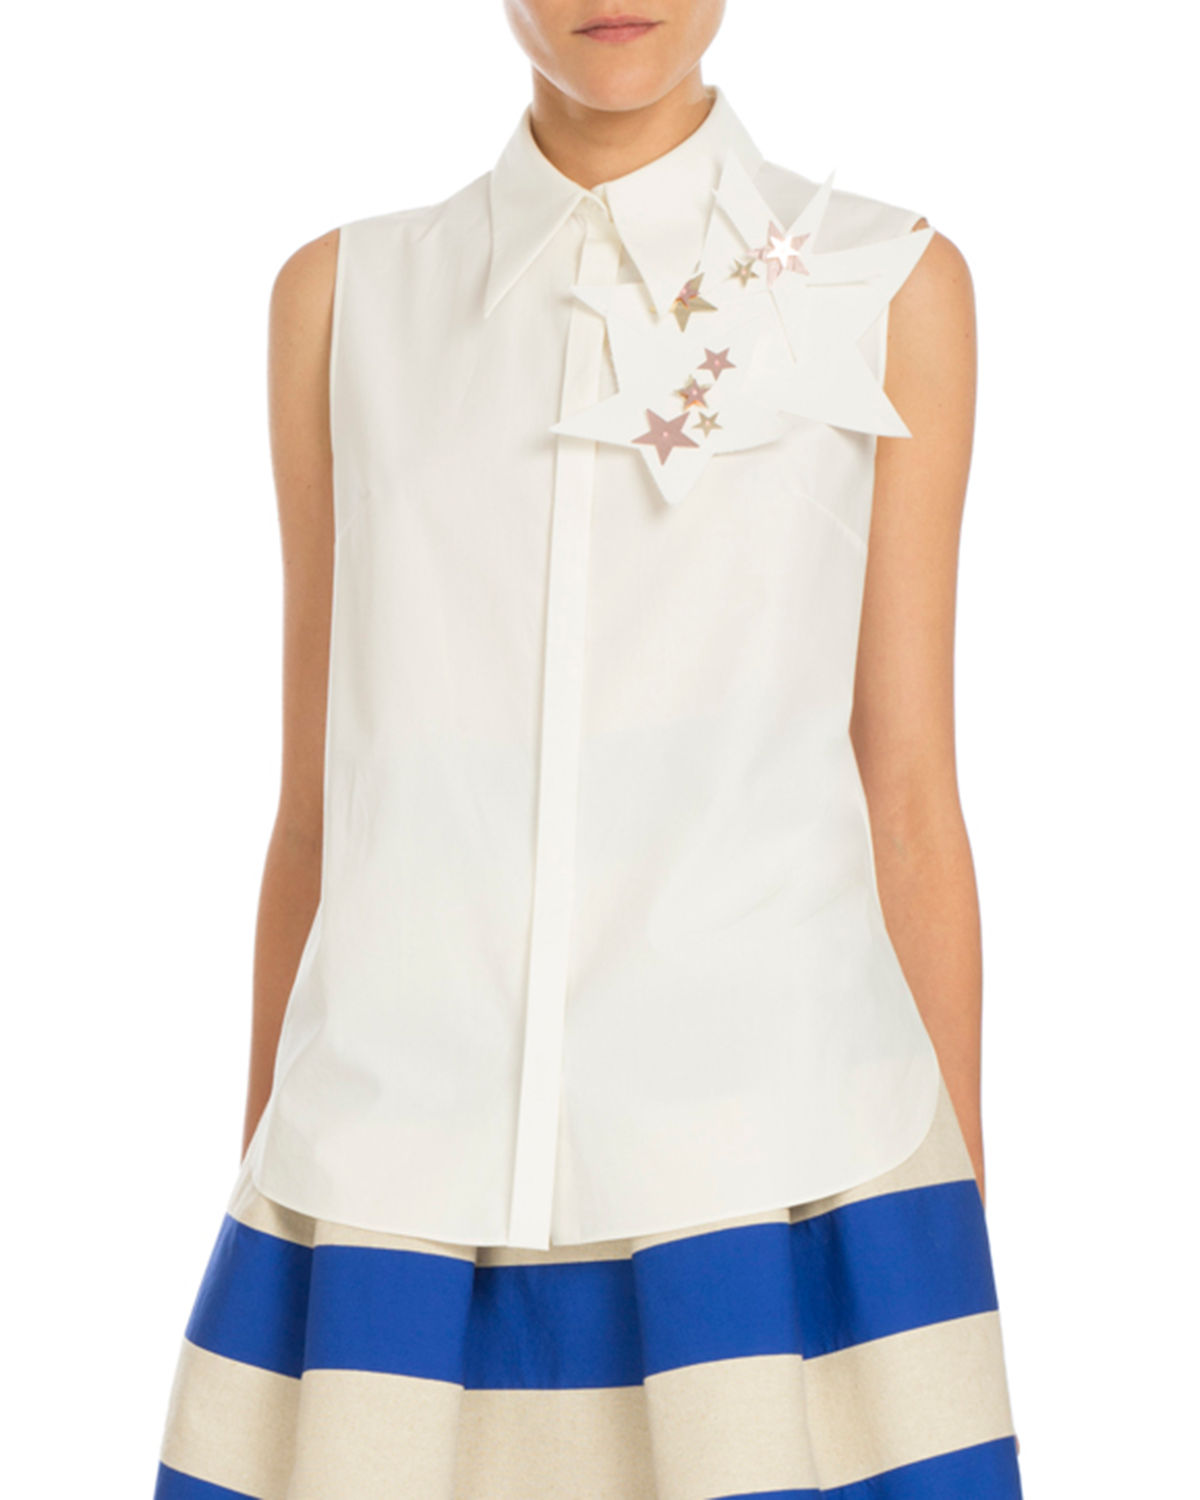 Star-Pin Sleeveless Blouse